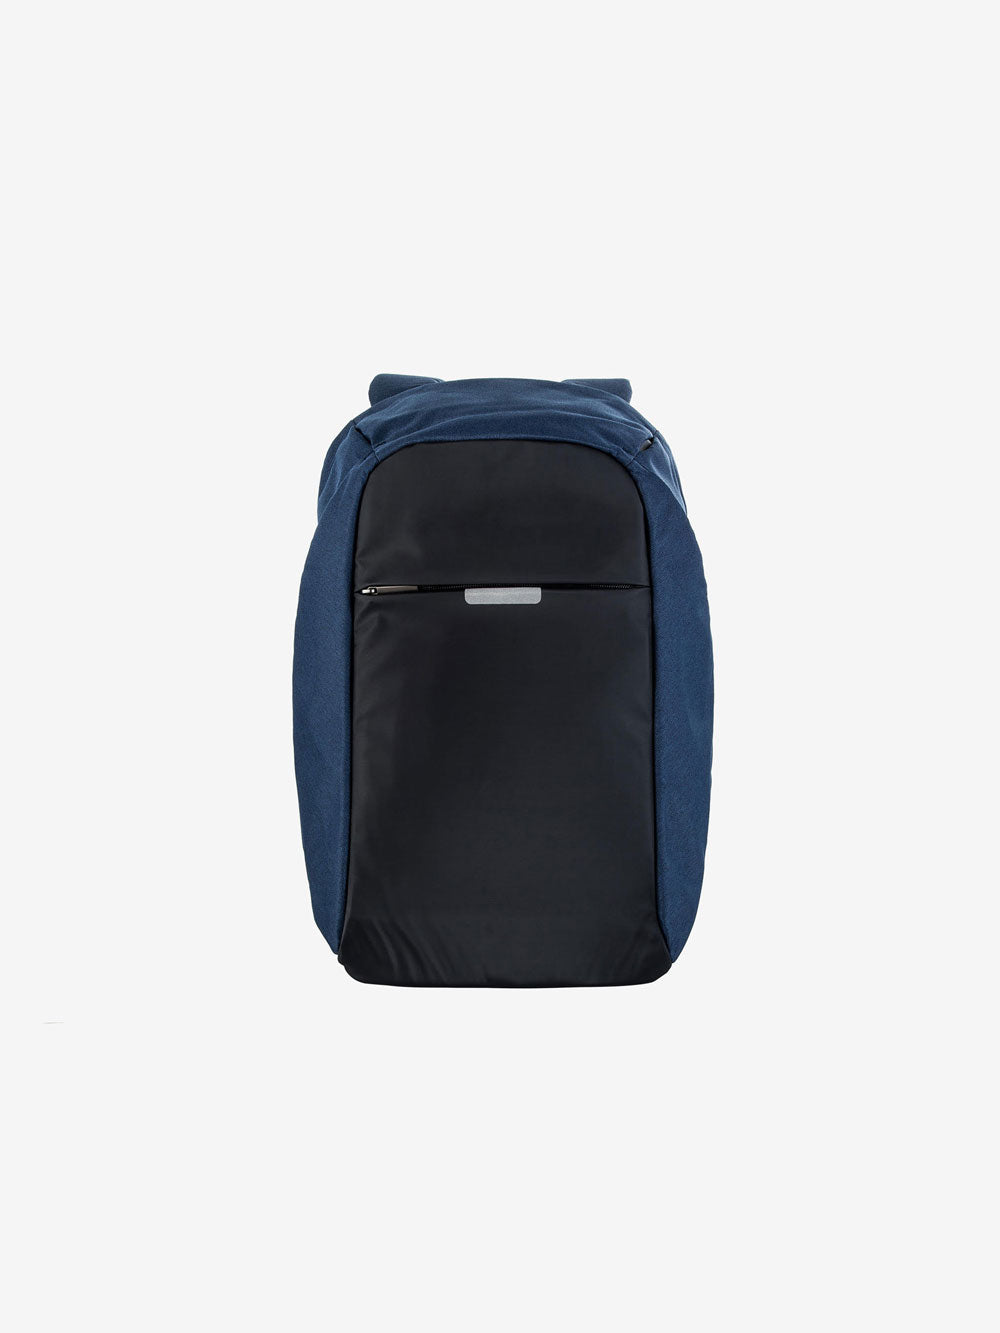 Daypack with Charger in Navy